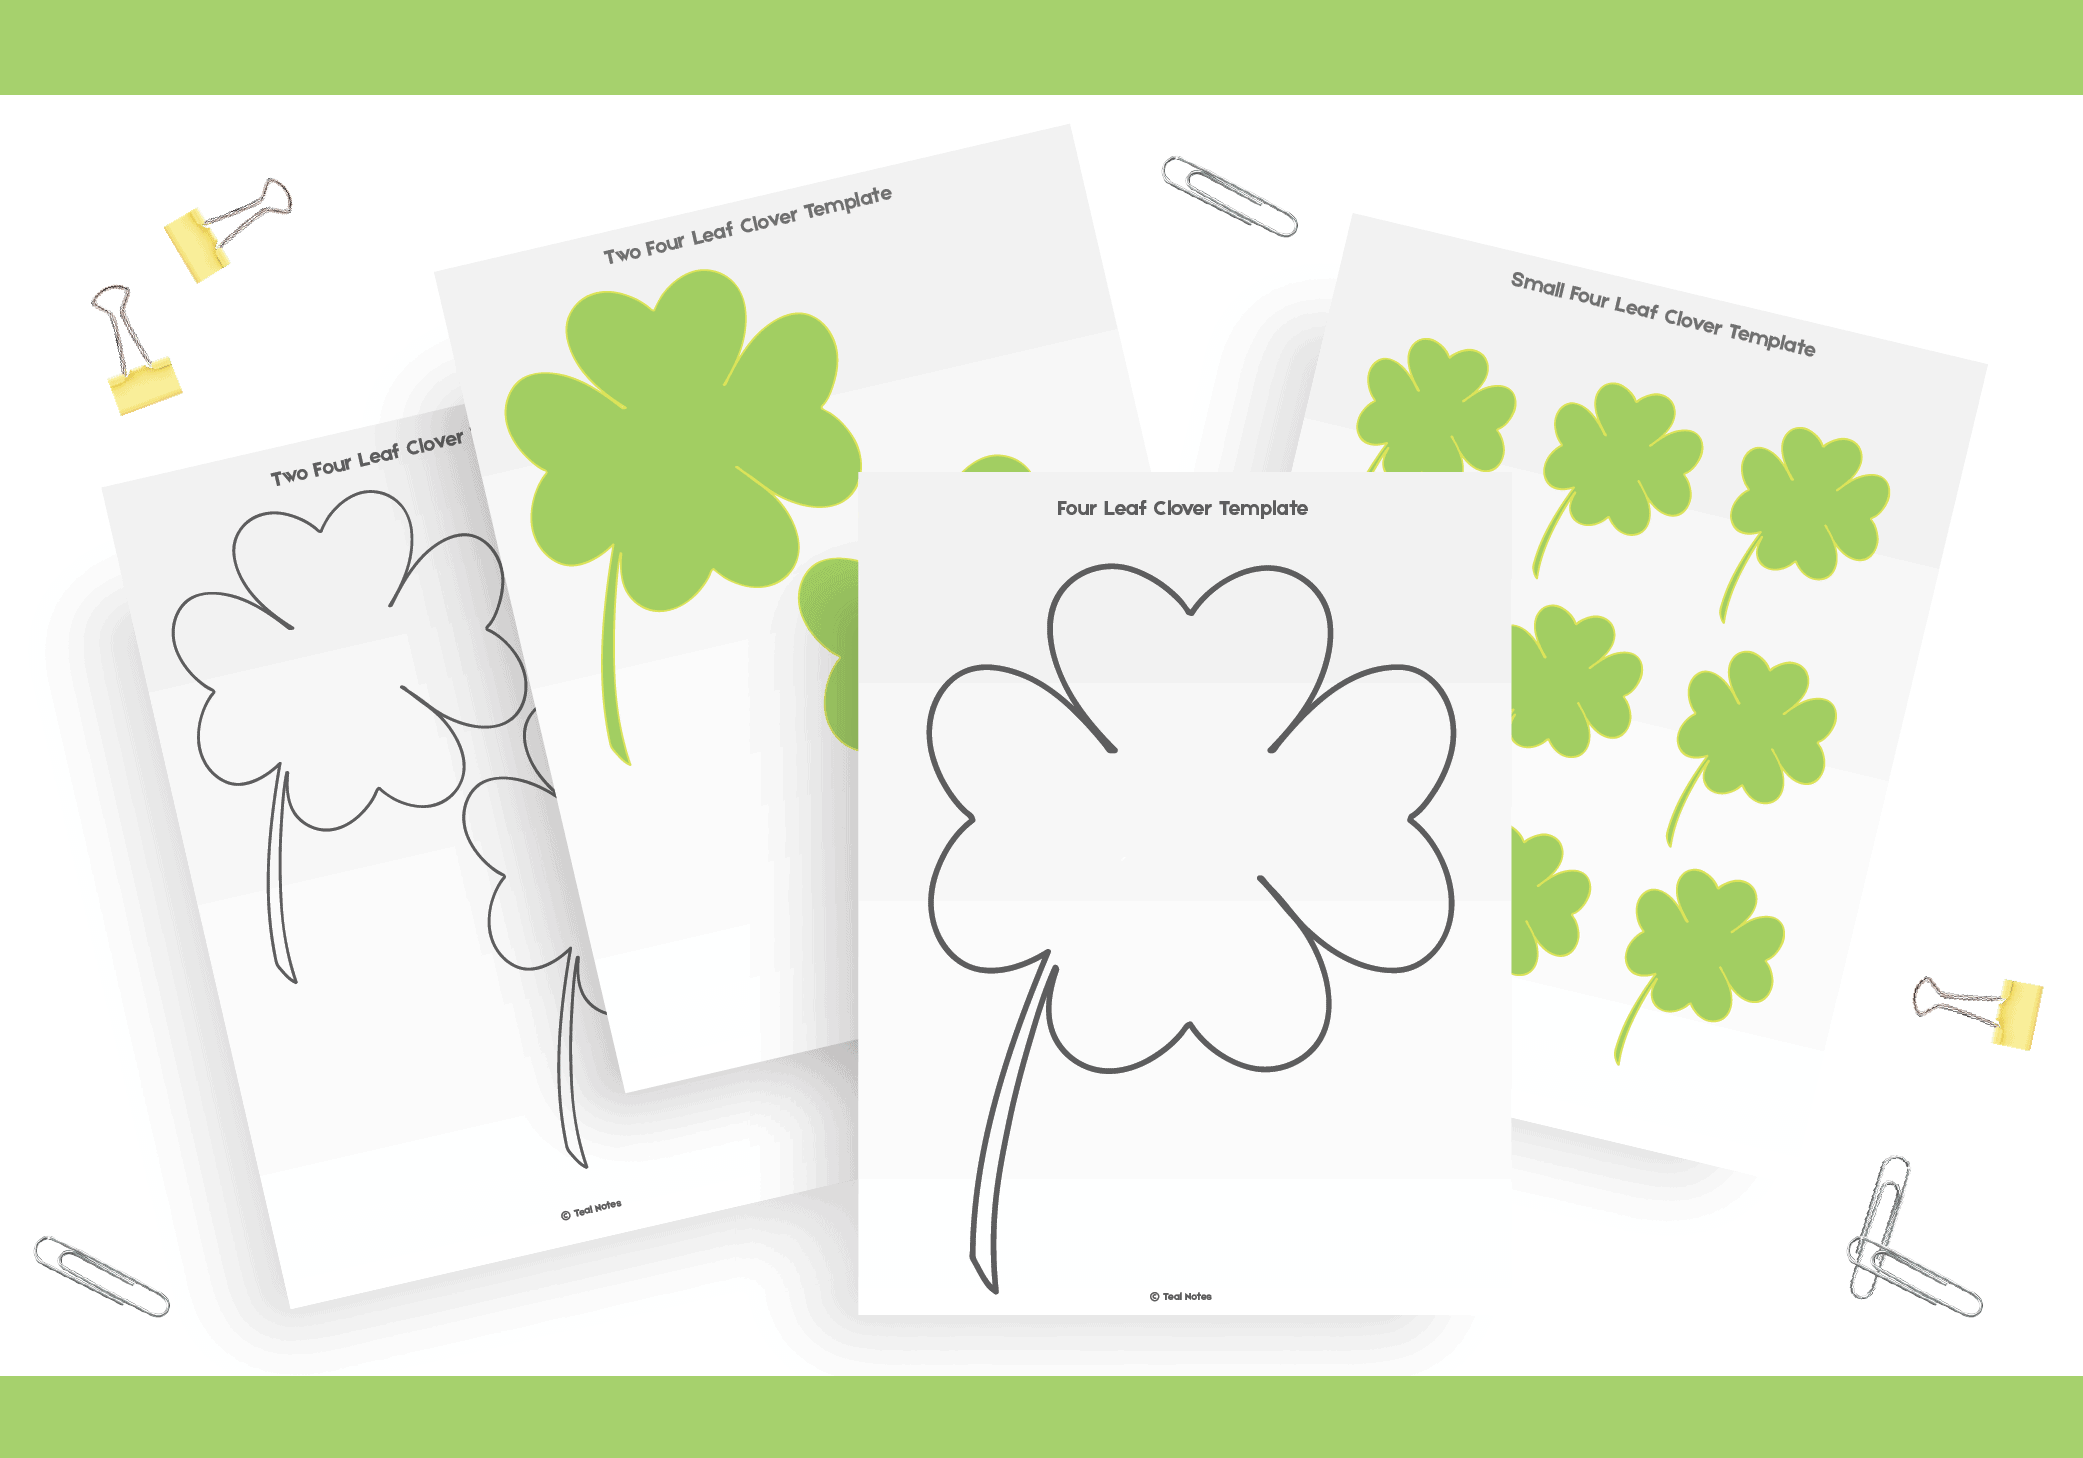 photograph relating to Free Printable Shamrock Template titled 4 Leaf Clover Template: Totally free Shamrock Template Printable